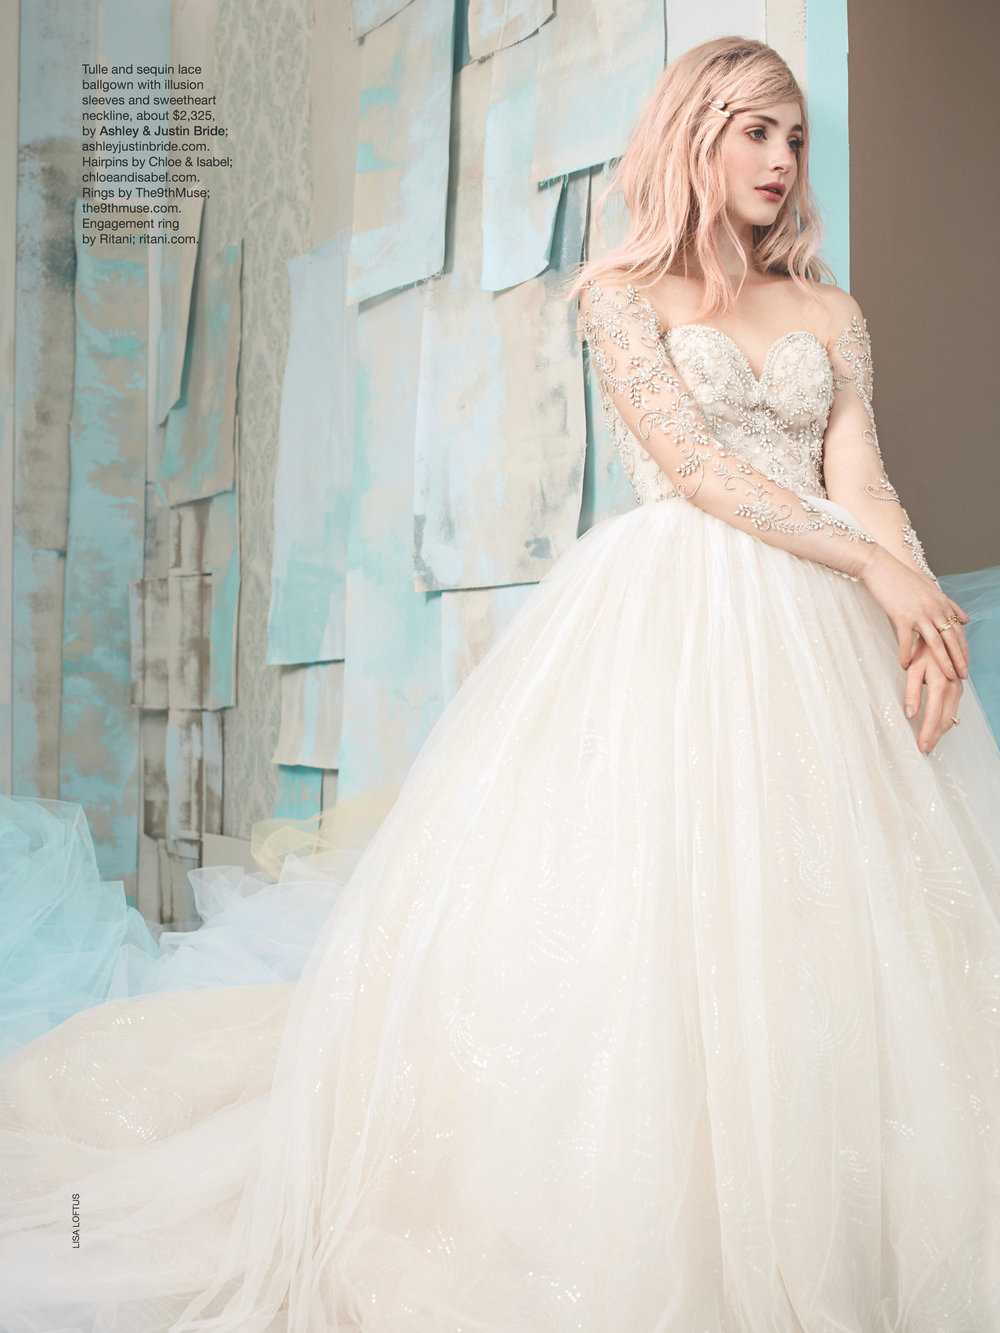 the9thmuse-BridalGuide2.jpg